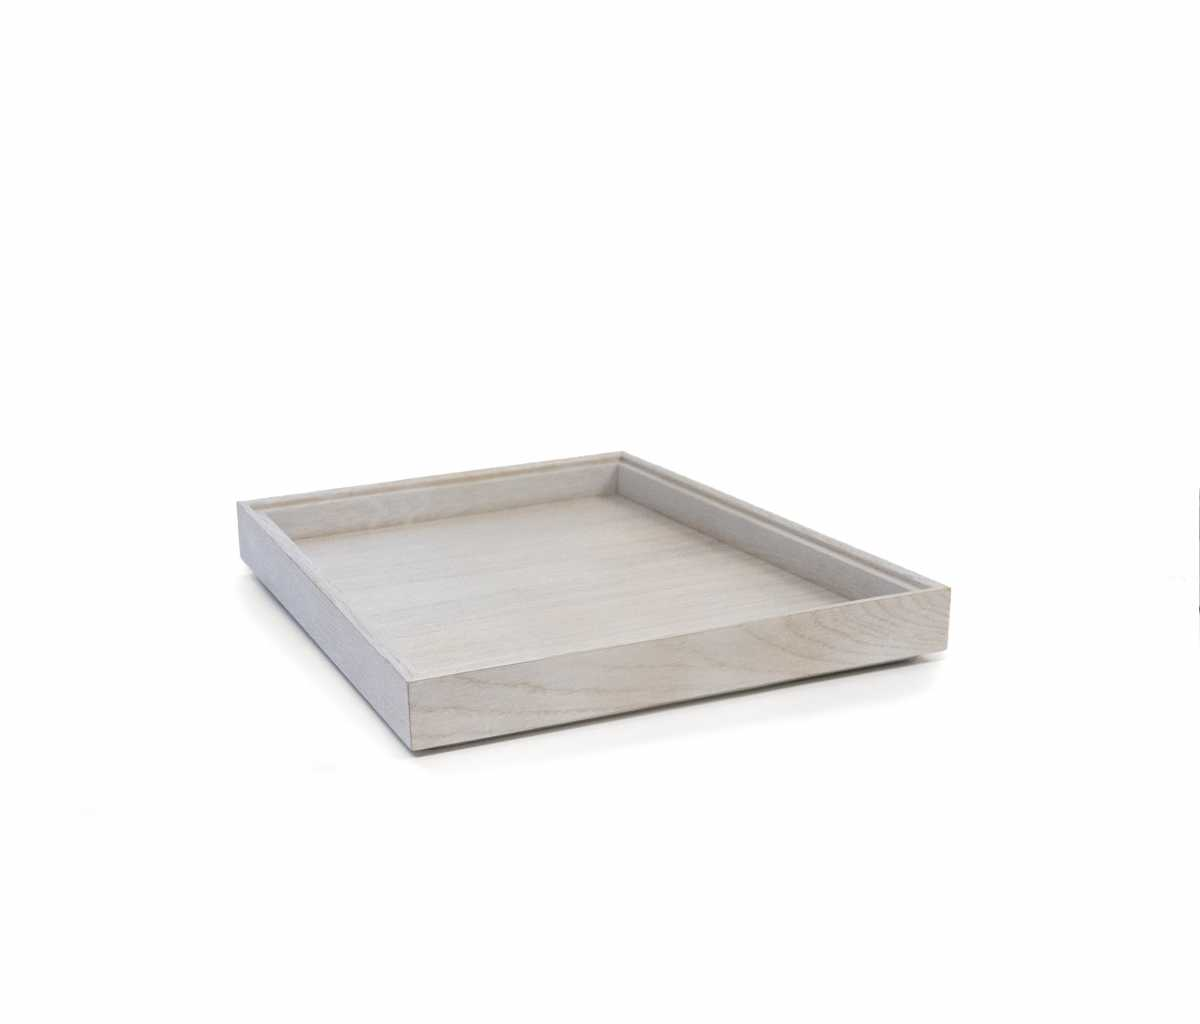 CRASTER Flow White-Washed Tray 1.2